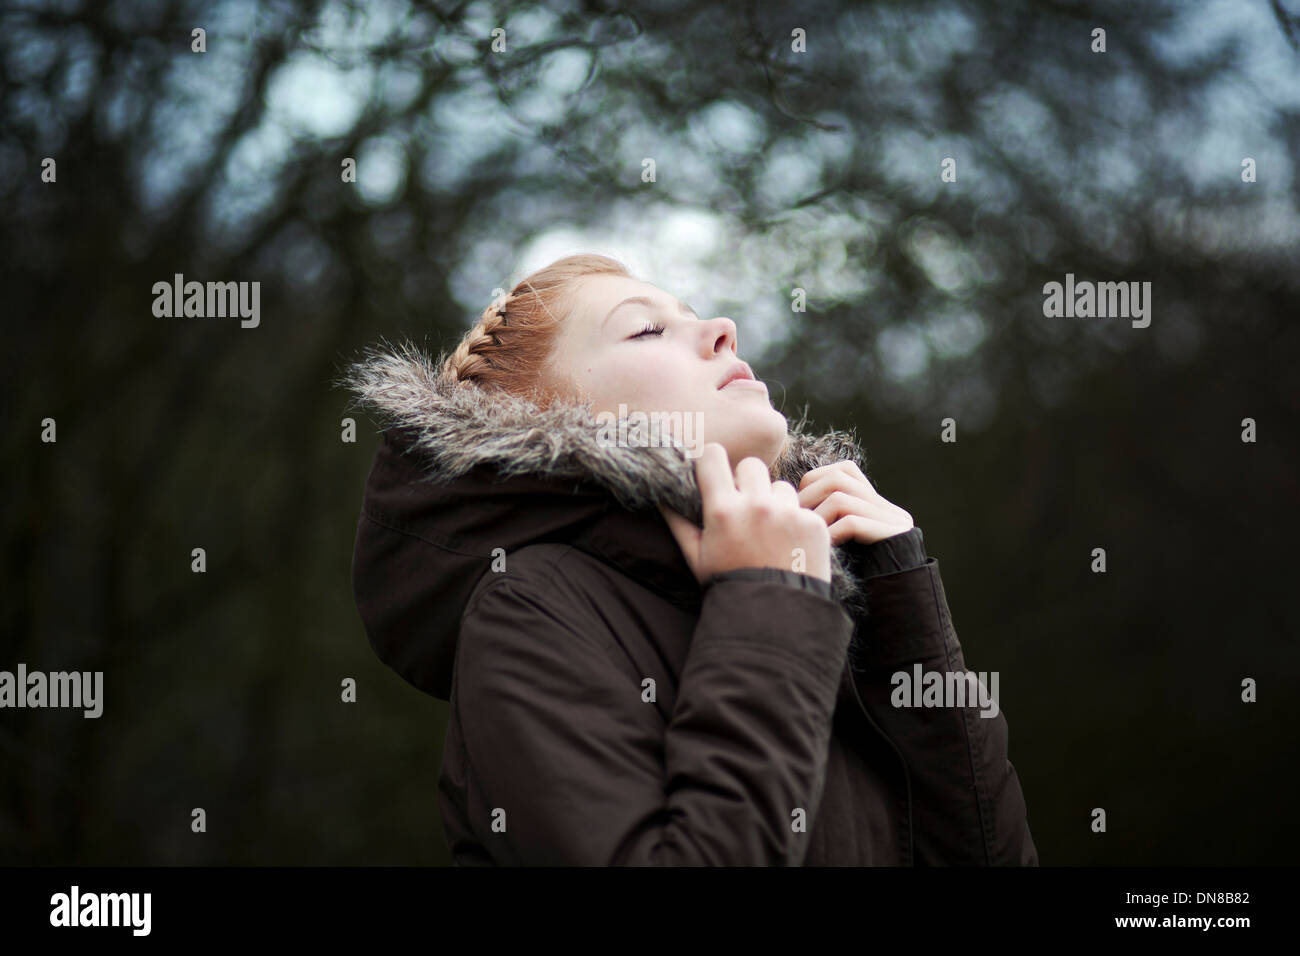 Woman with eyes closed snuggles in winter jacket - Stock Image